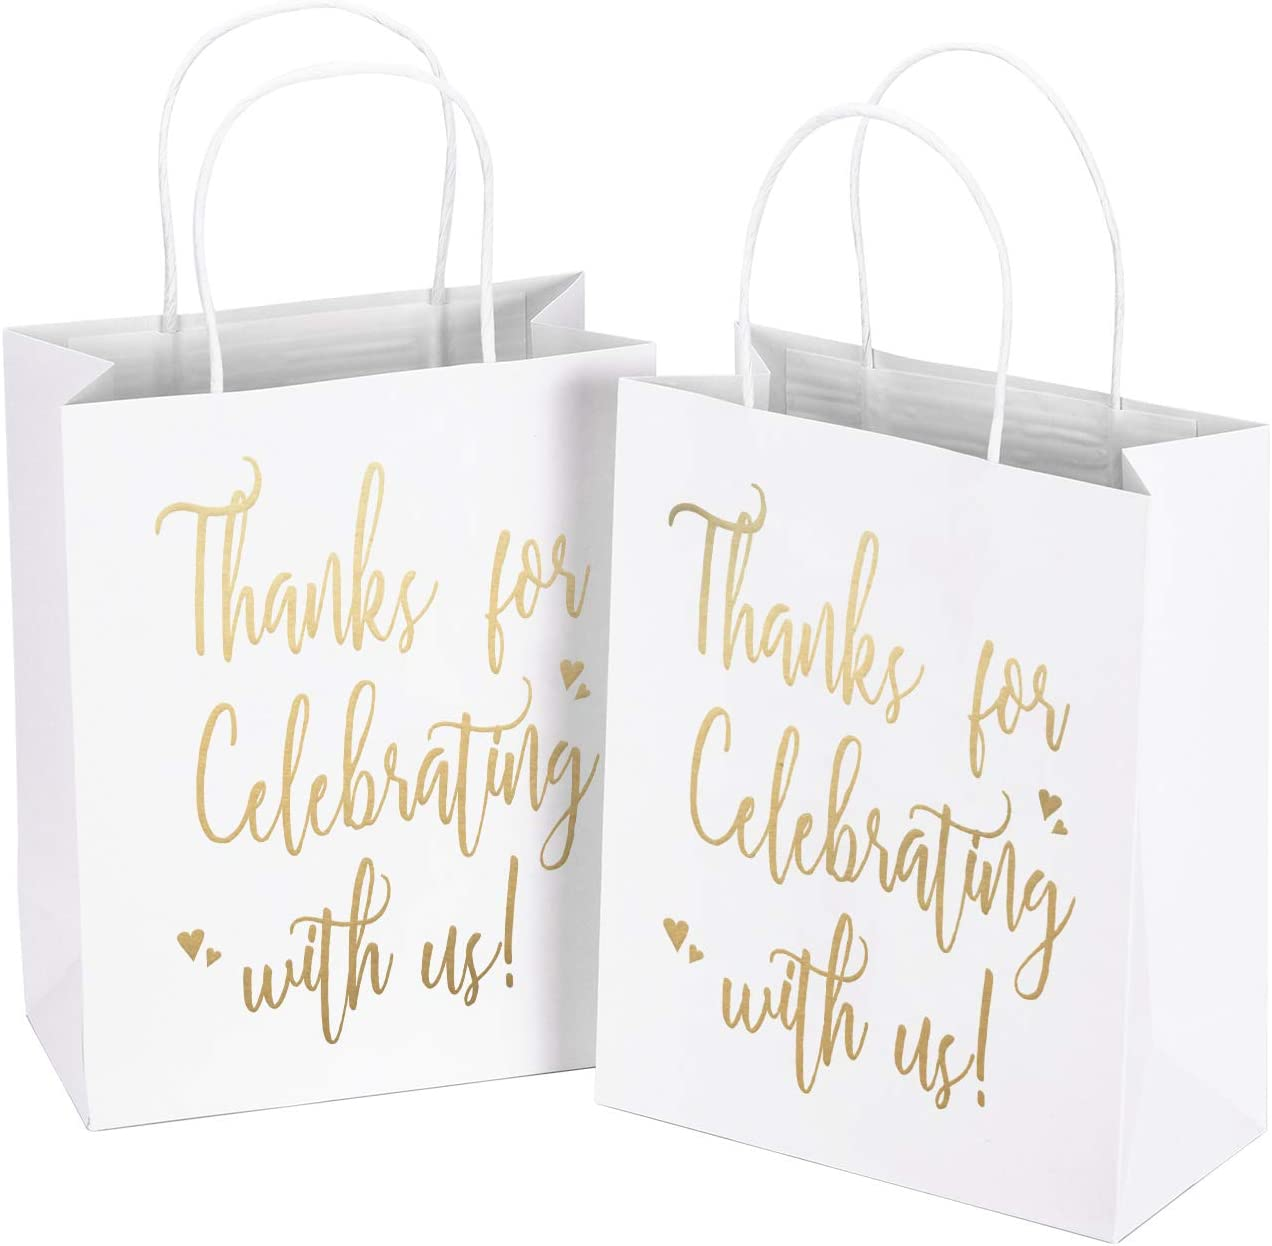 "LaRibbons Medium Size Gift Bags - Gold Foil""Thanks for Celebrating with us"" White Paper Bags with Handles for Wedding, Birthday, Baby Shower, Party Favors - 12 Pack - 8"" x 4"" x 10"""